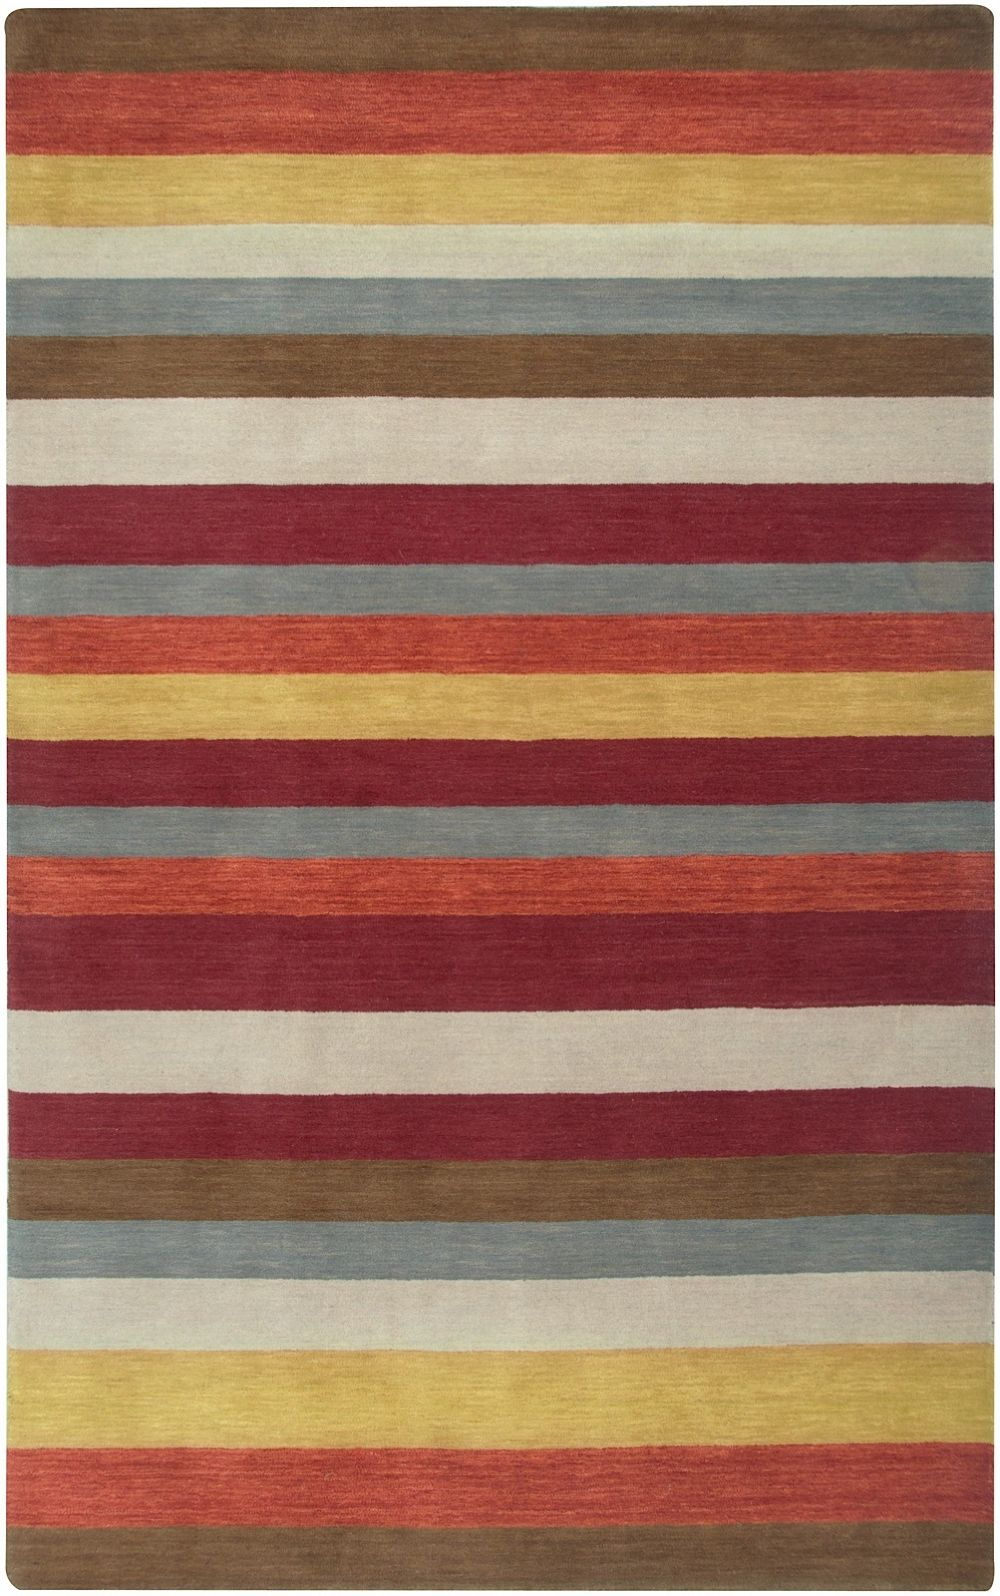 rizzy rugs platoon solid/striped area rug collection